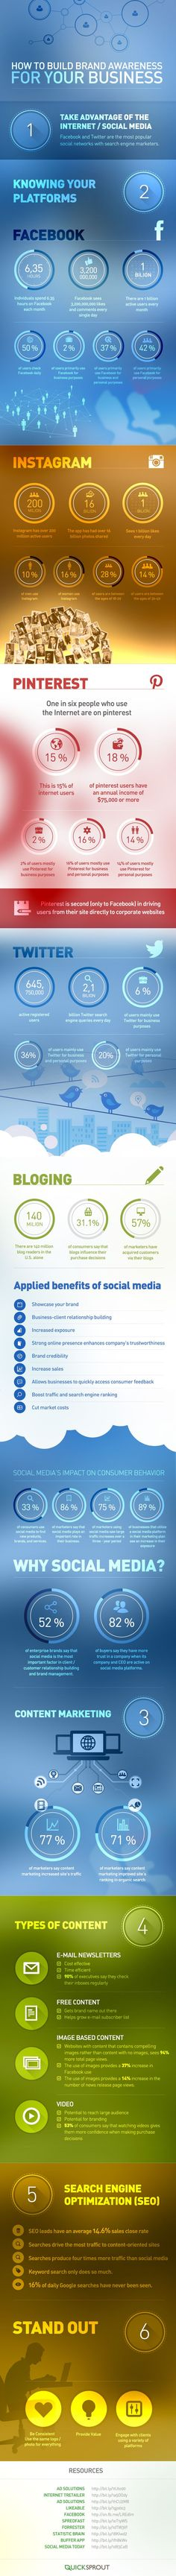 Facebook, Instagram, Pinterest, Twitter: How to Build Brand Awareness [INFOGRAPHIC]